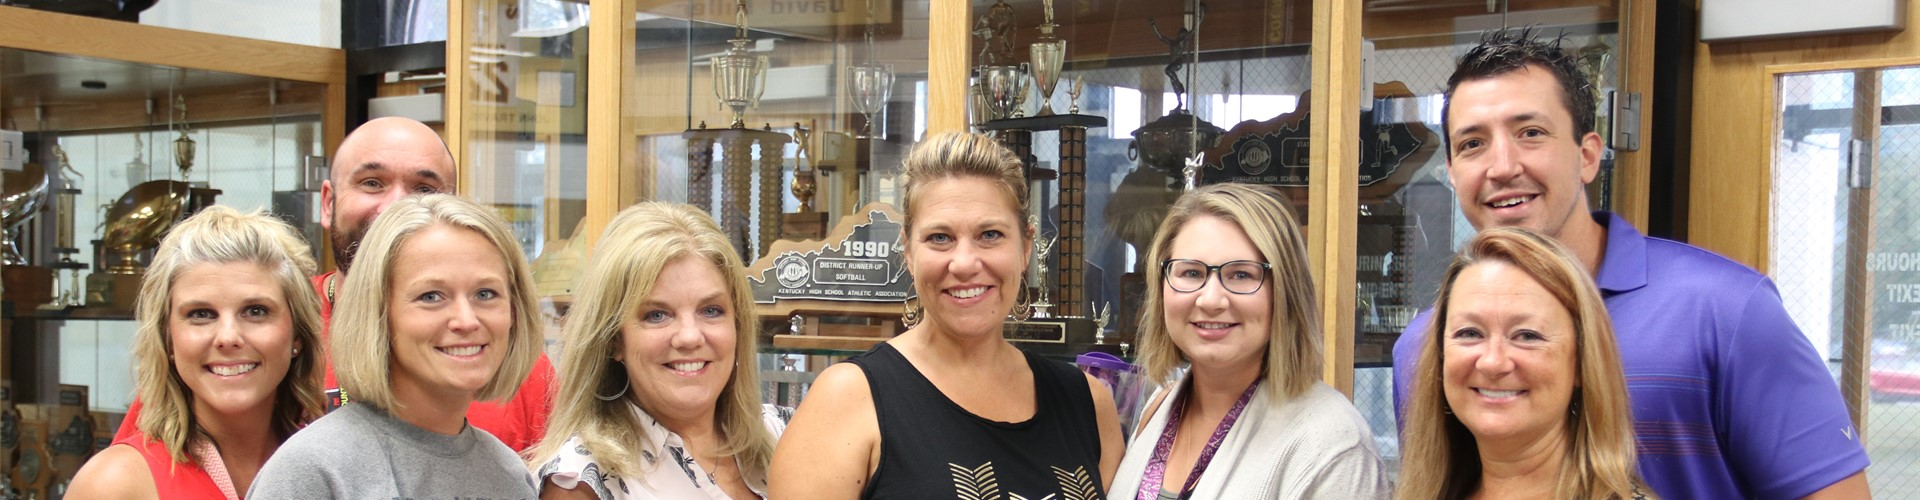 Eight staff members face the camera and smile in front  of the CCHS trophy case.